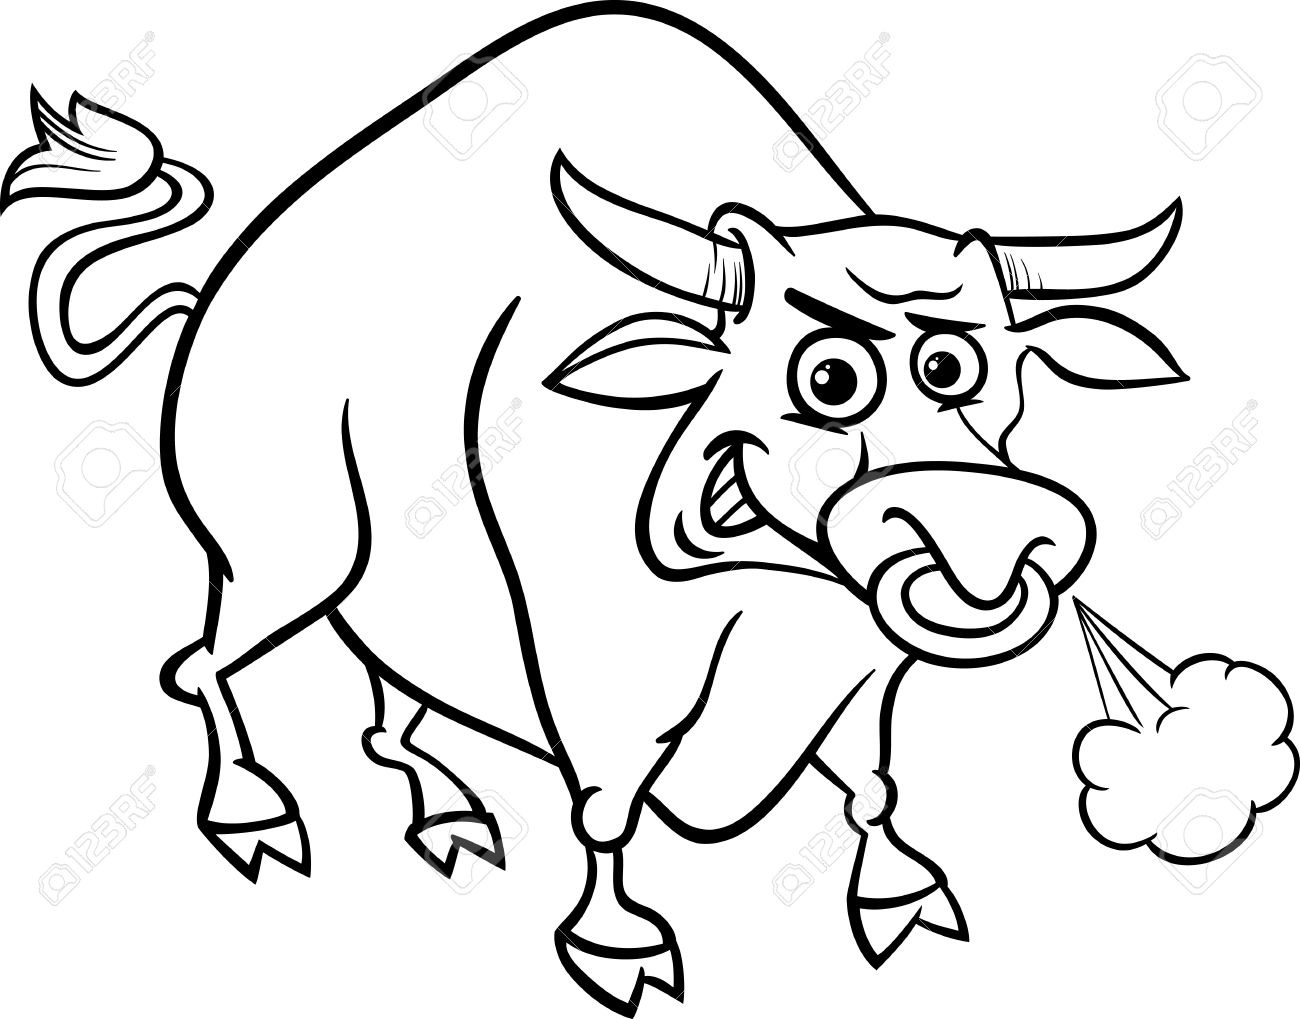 Ox clipart black and white. Letters format cartoon illustration